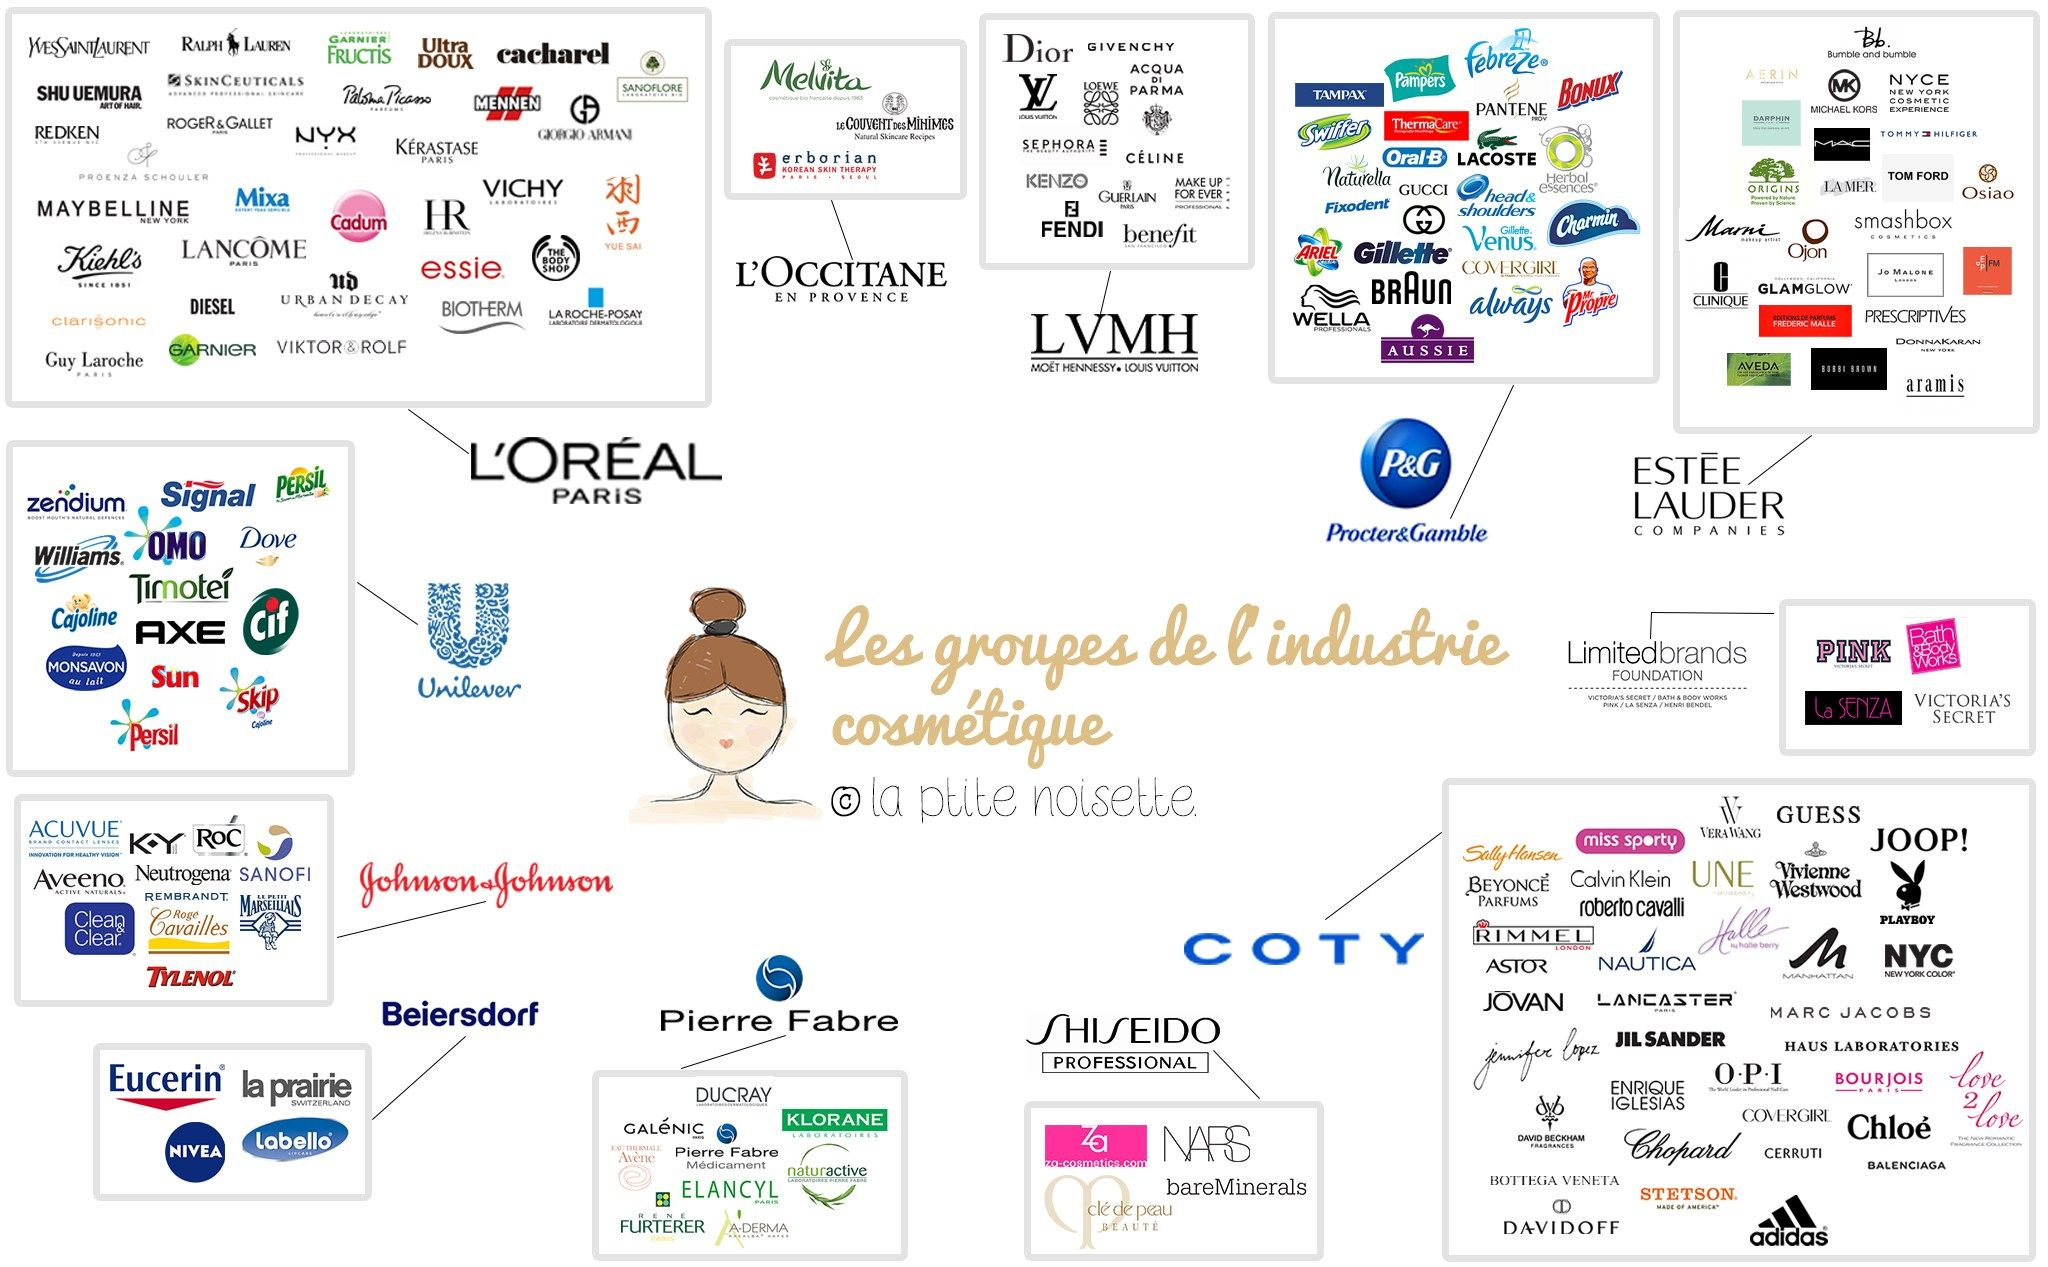 Groupes Industrie Cosmetique Jpg 2048 1267 Cruelty Free